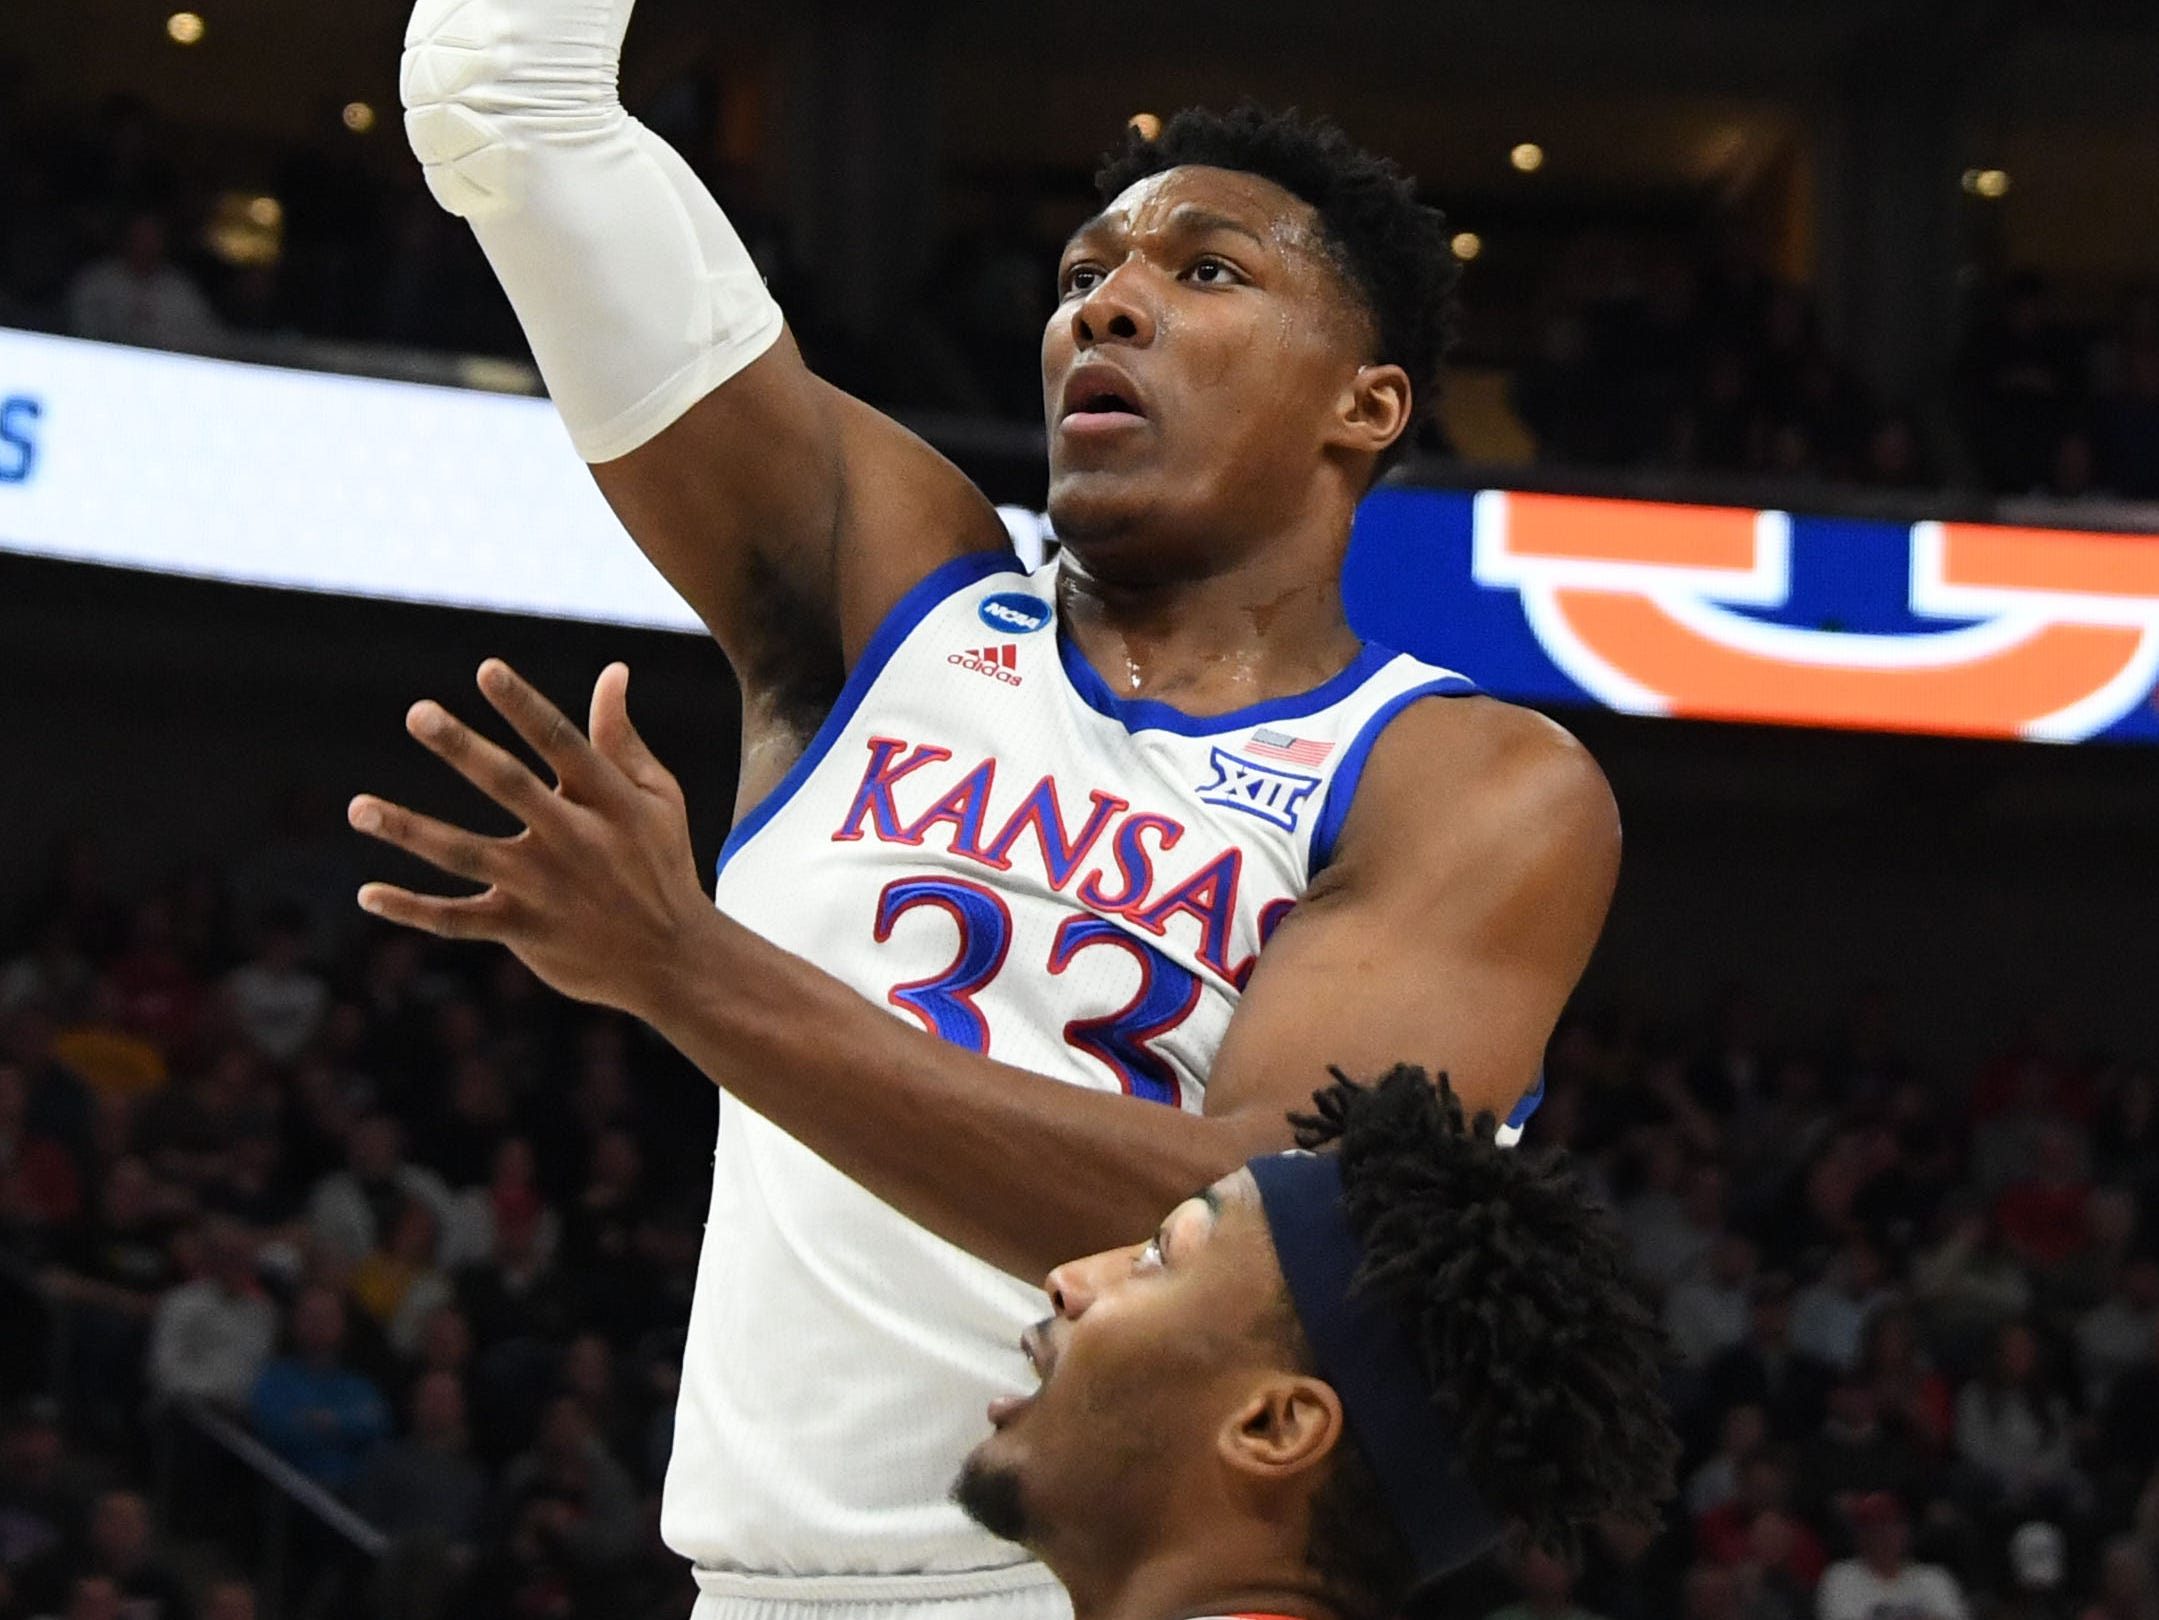 Mar 23, 2019; Salt Lake City, UT, USA; Kansas Jayhawks forward David McCormack (33) shoots as Auburn Tigers forward Anfernee McLemore (24) looks on during the first half in the second round of the 2019 NCAA Tournament at Vivint Smart Home Arena. Mandatory Credit: Kirby Lee-USA TODAY Sports